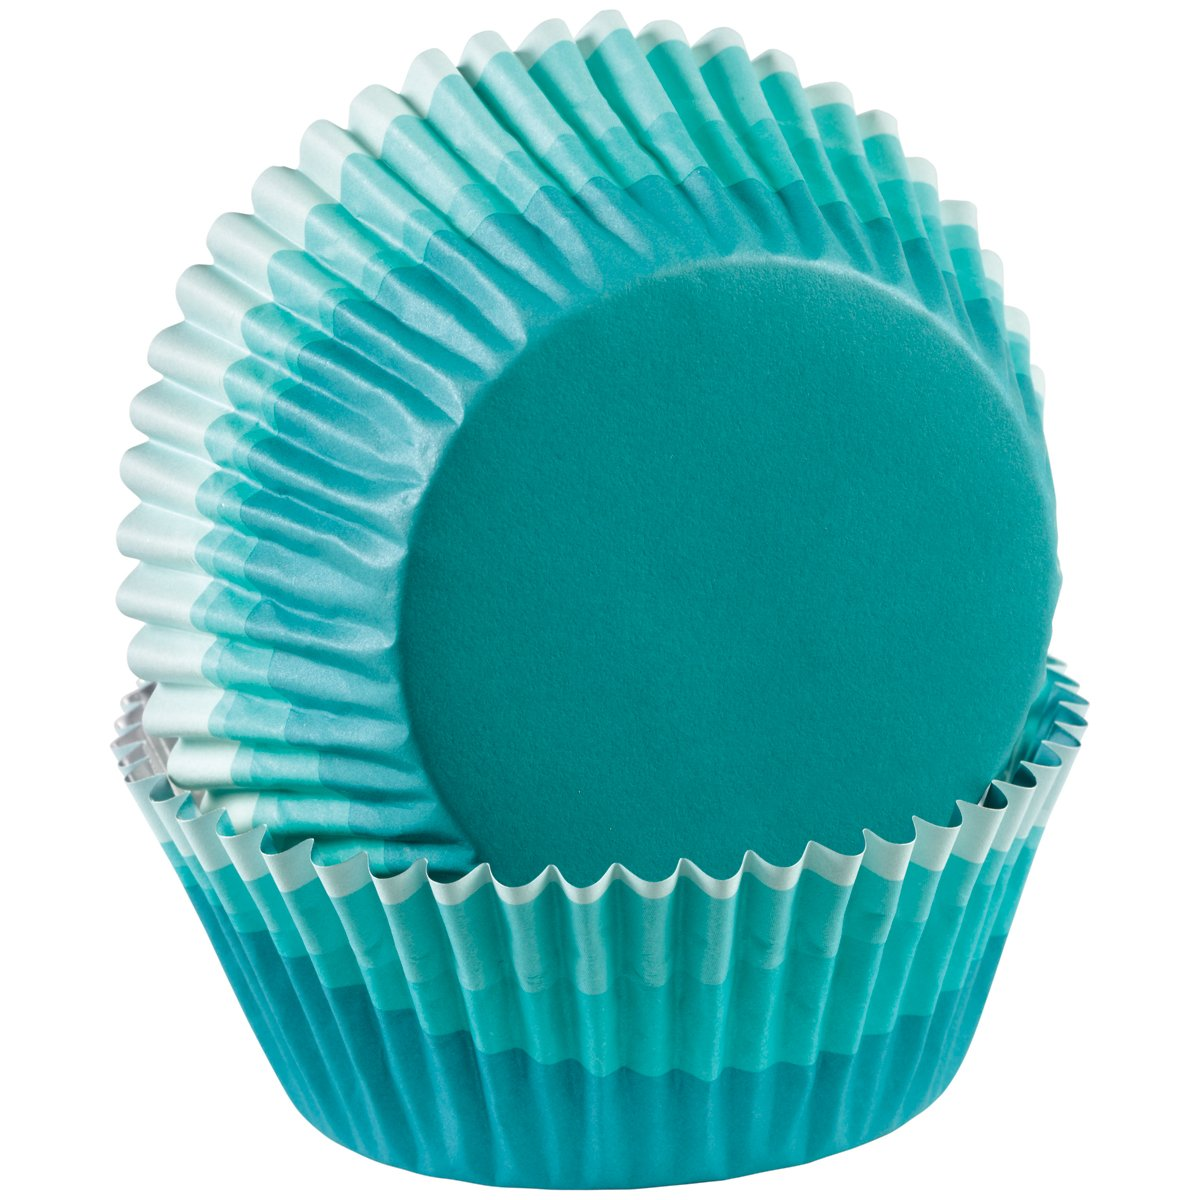 Wilton ColorCup Standard Baking Cups, Blue Ombre, 36-Pack (W415CC-0631) Notions - In Network